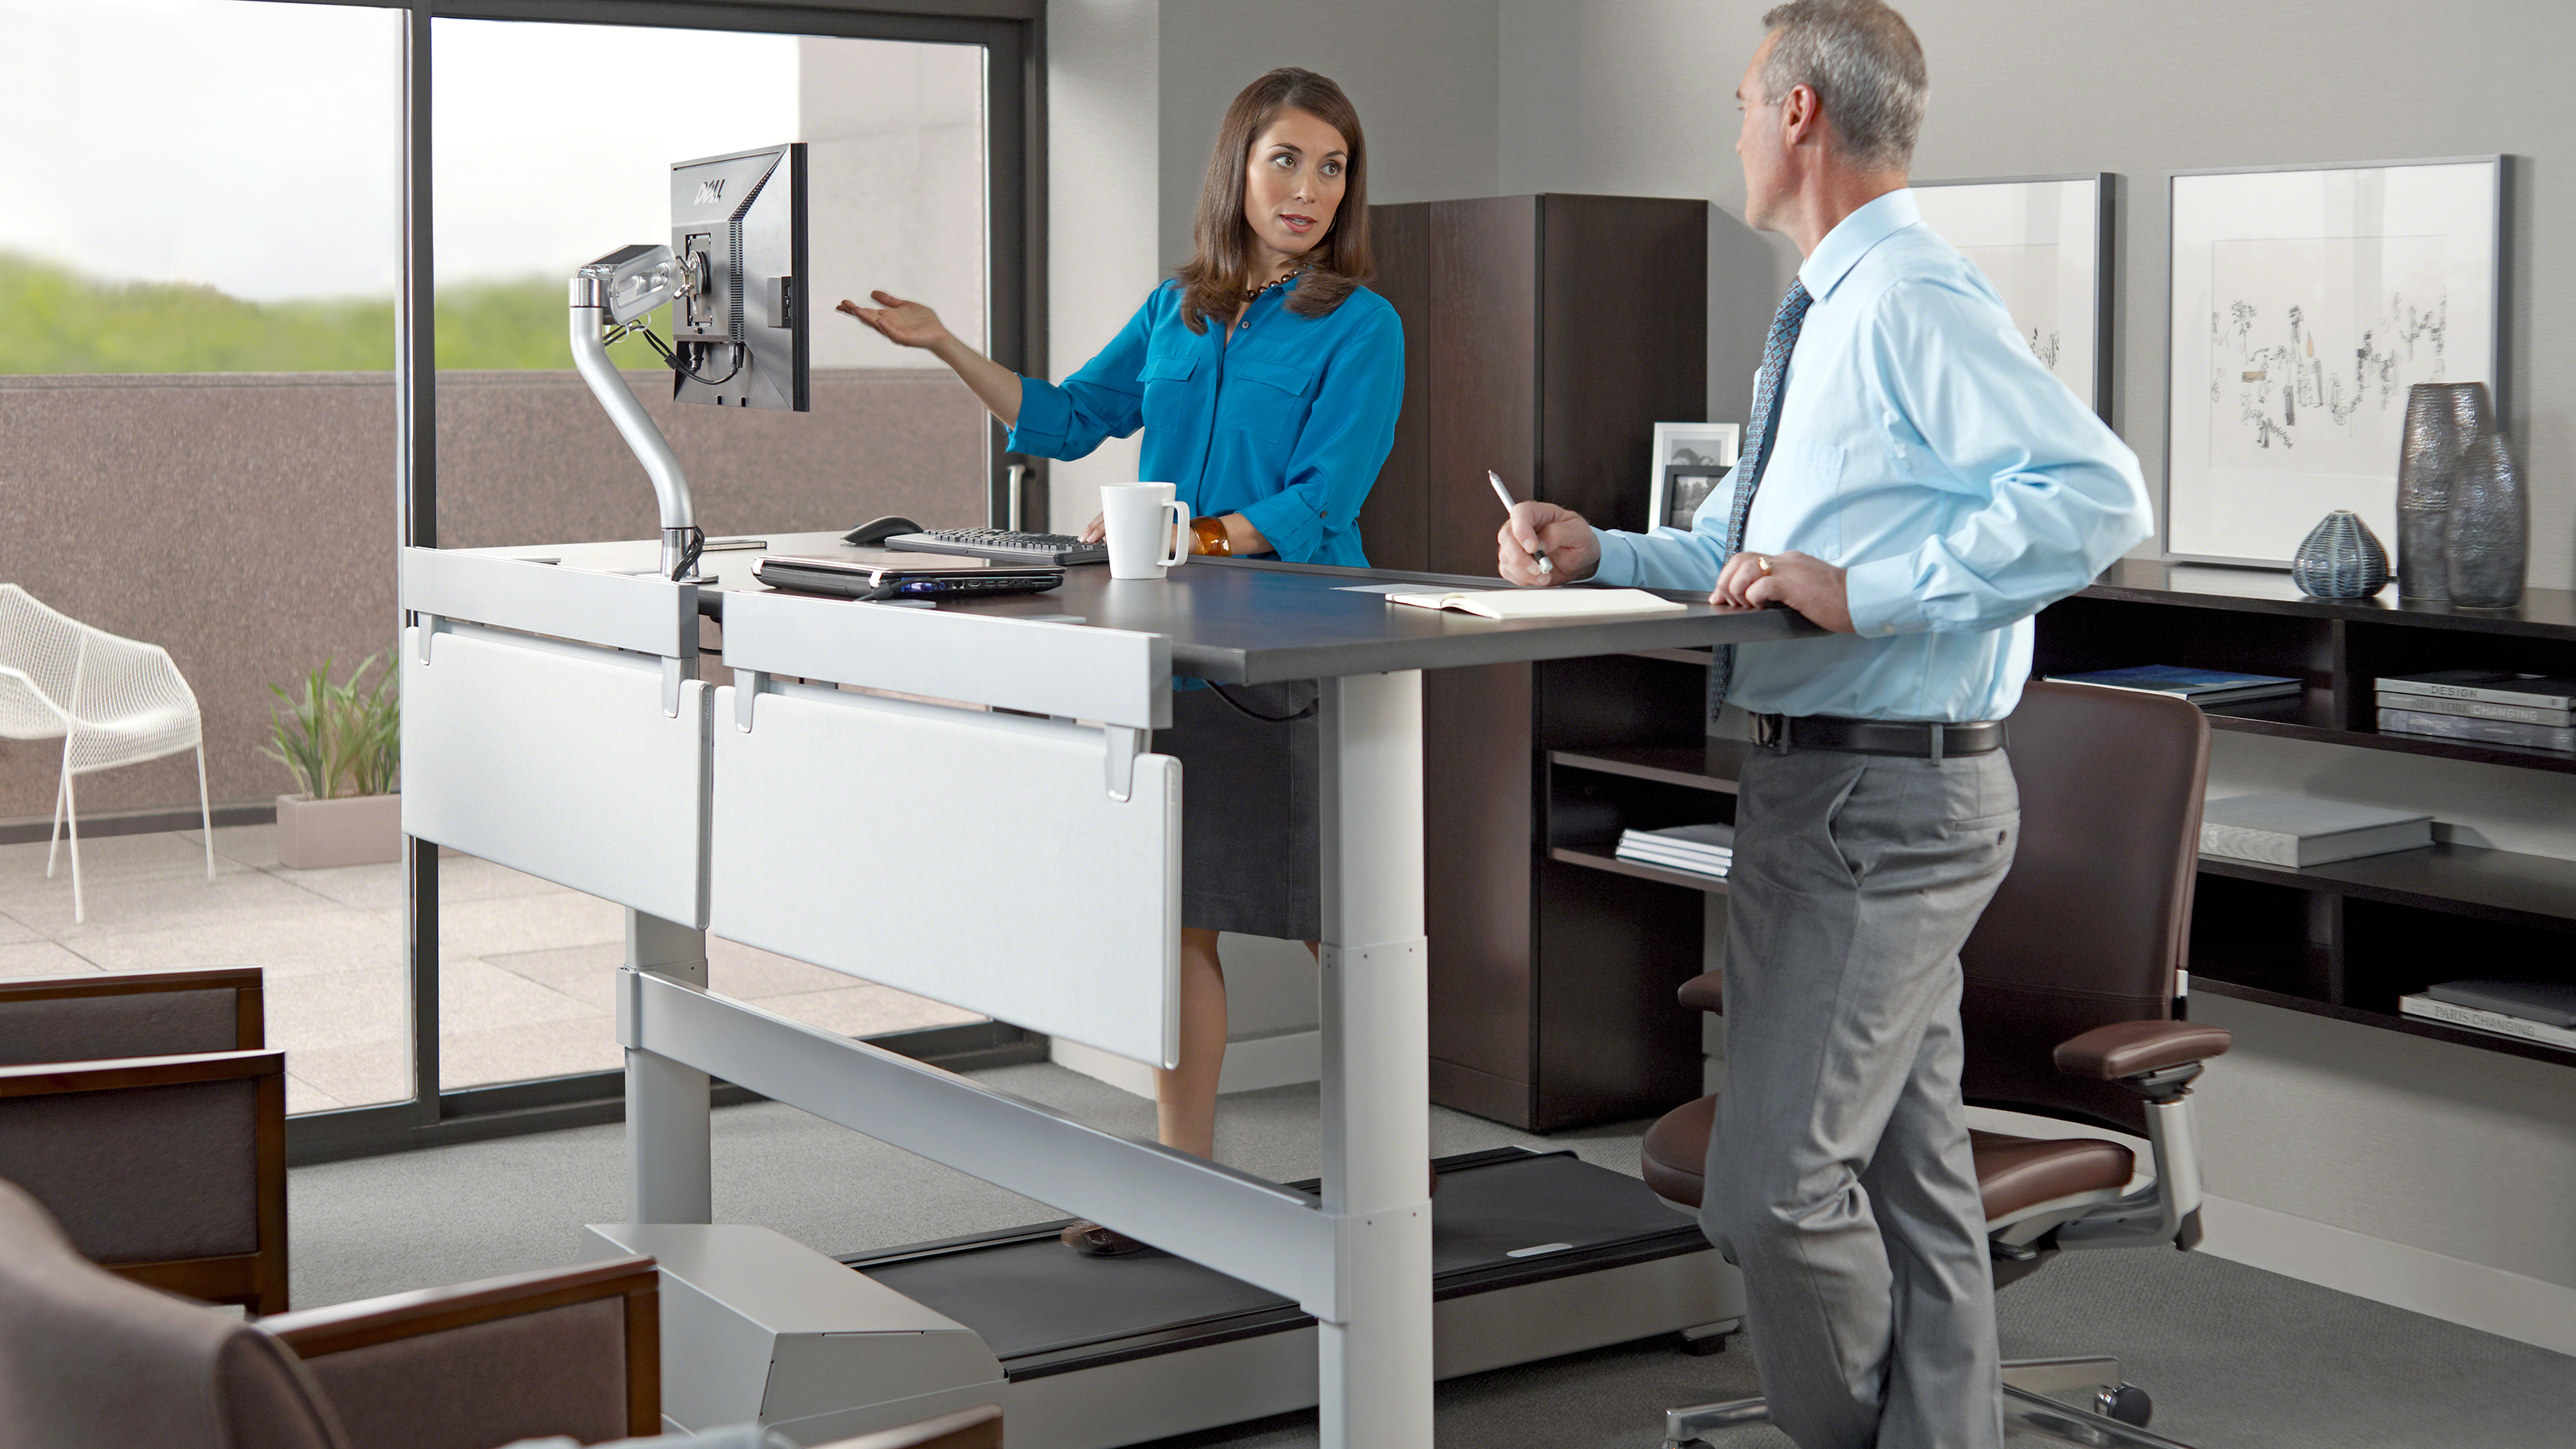 Walkstation Treadmill Desk For Office Wellbeing Steelcase